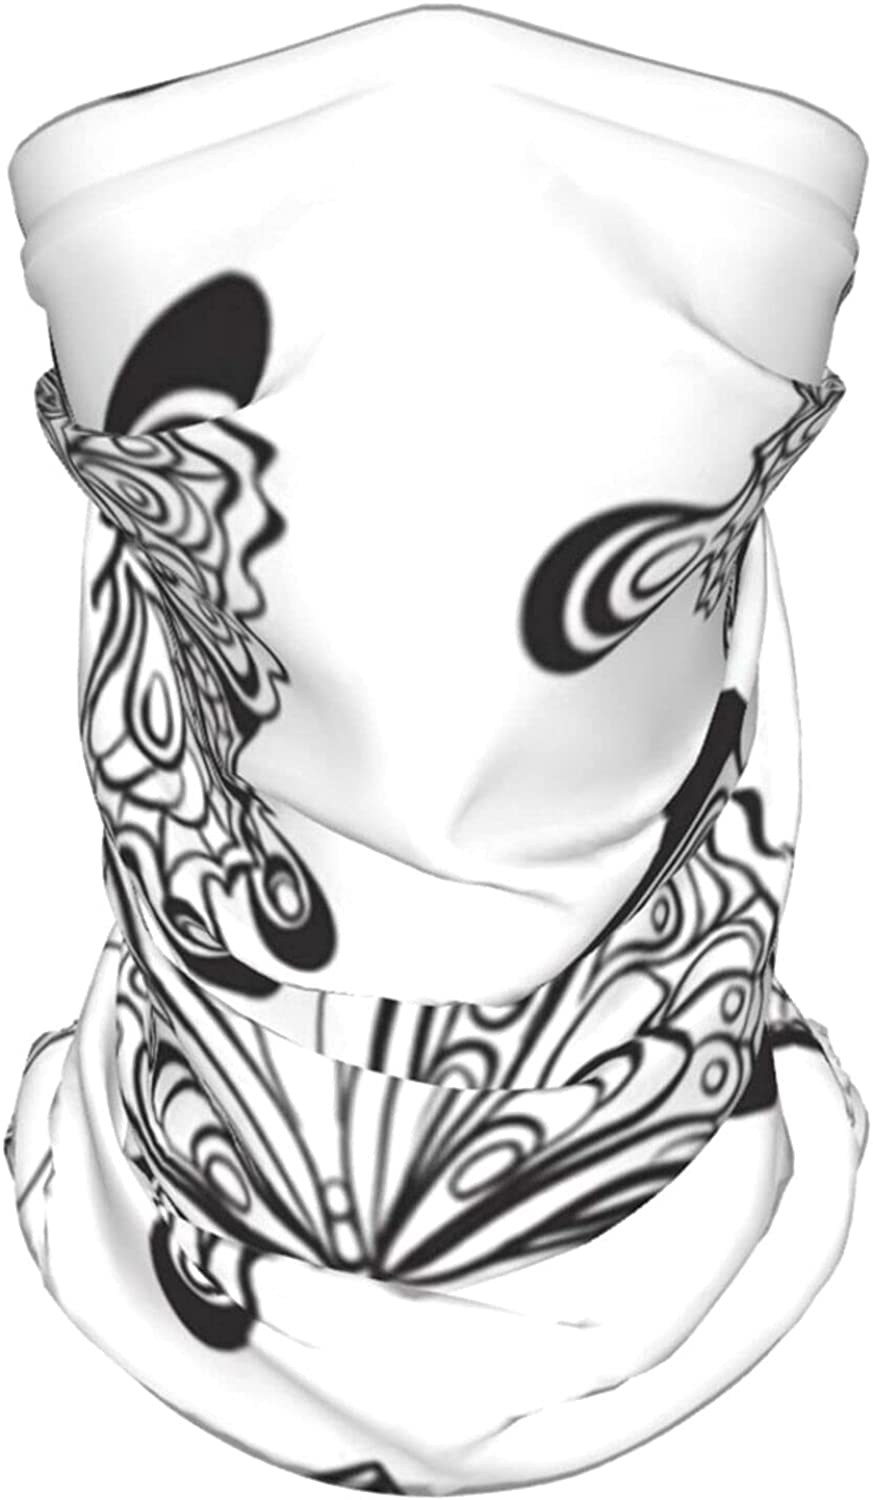 Black White Butterflies Animals Wildlife Summer Ice Silk Breathable Face Mask Neck Gaiter Scarf Bandanas for Fishing,Hiking,Running,Motorcycle and Daily Wear